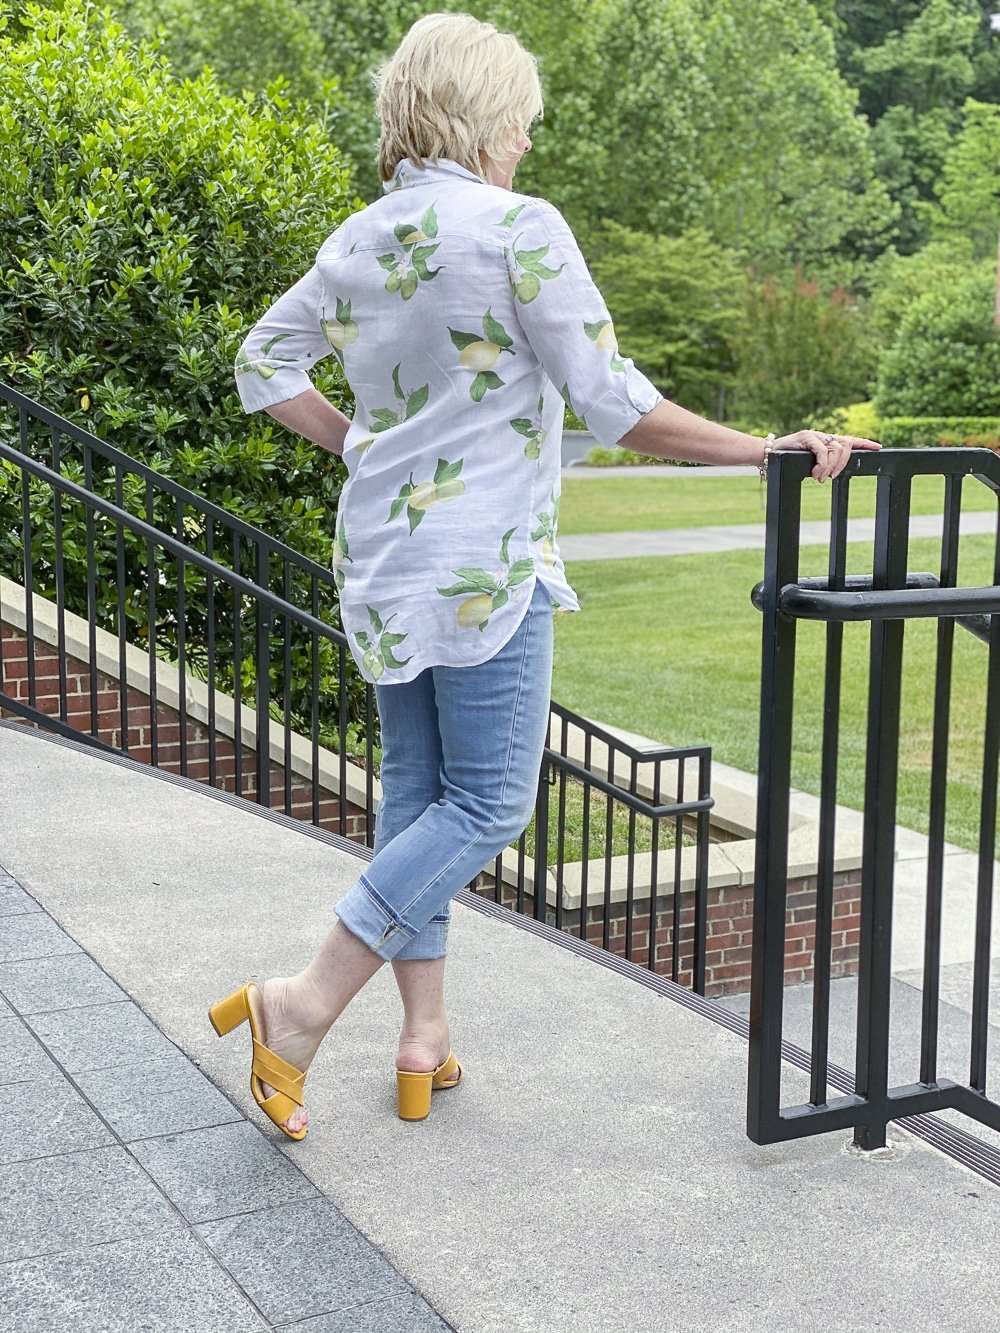 Fashion Blogger 50 Is Not Old is wearing a white button down shirt with yellow lemons, a pair of distressed jeans, and mustard yellow block heel sandals